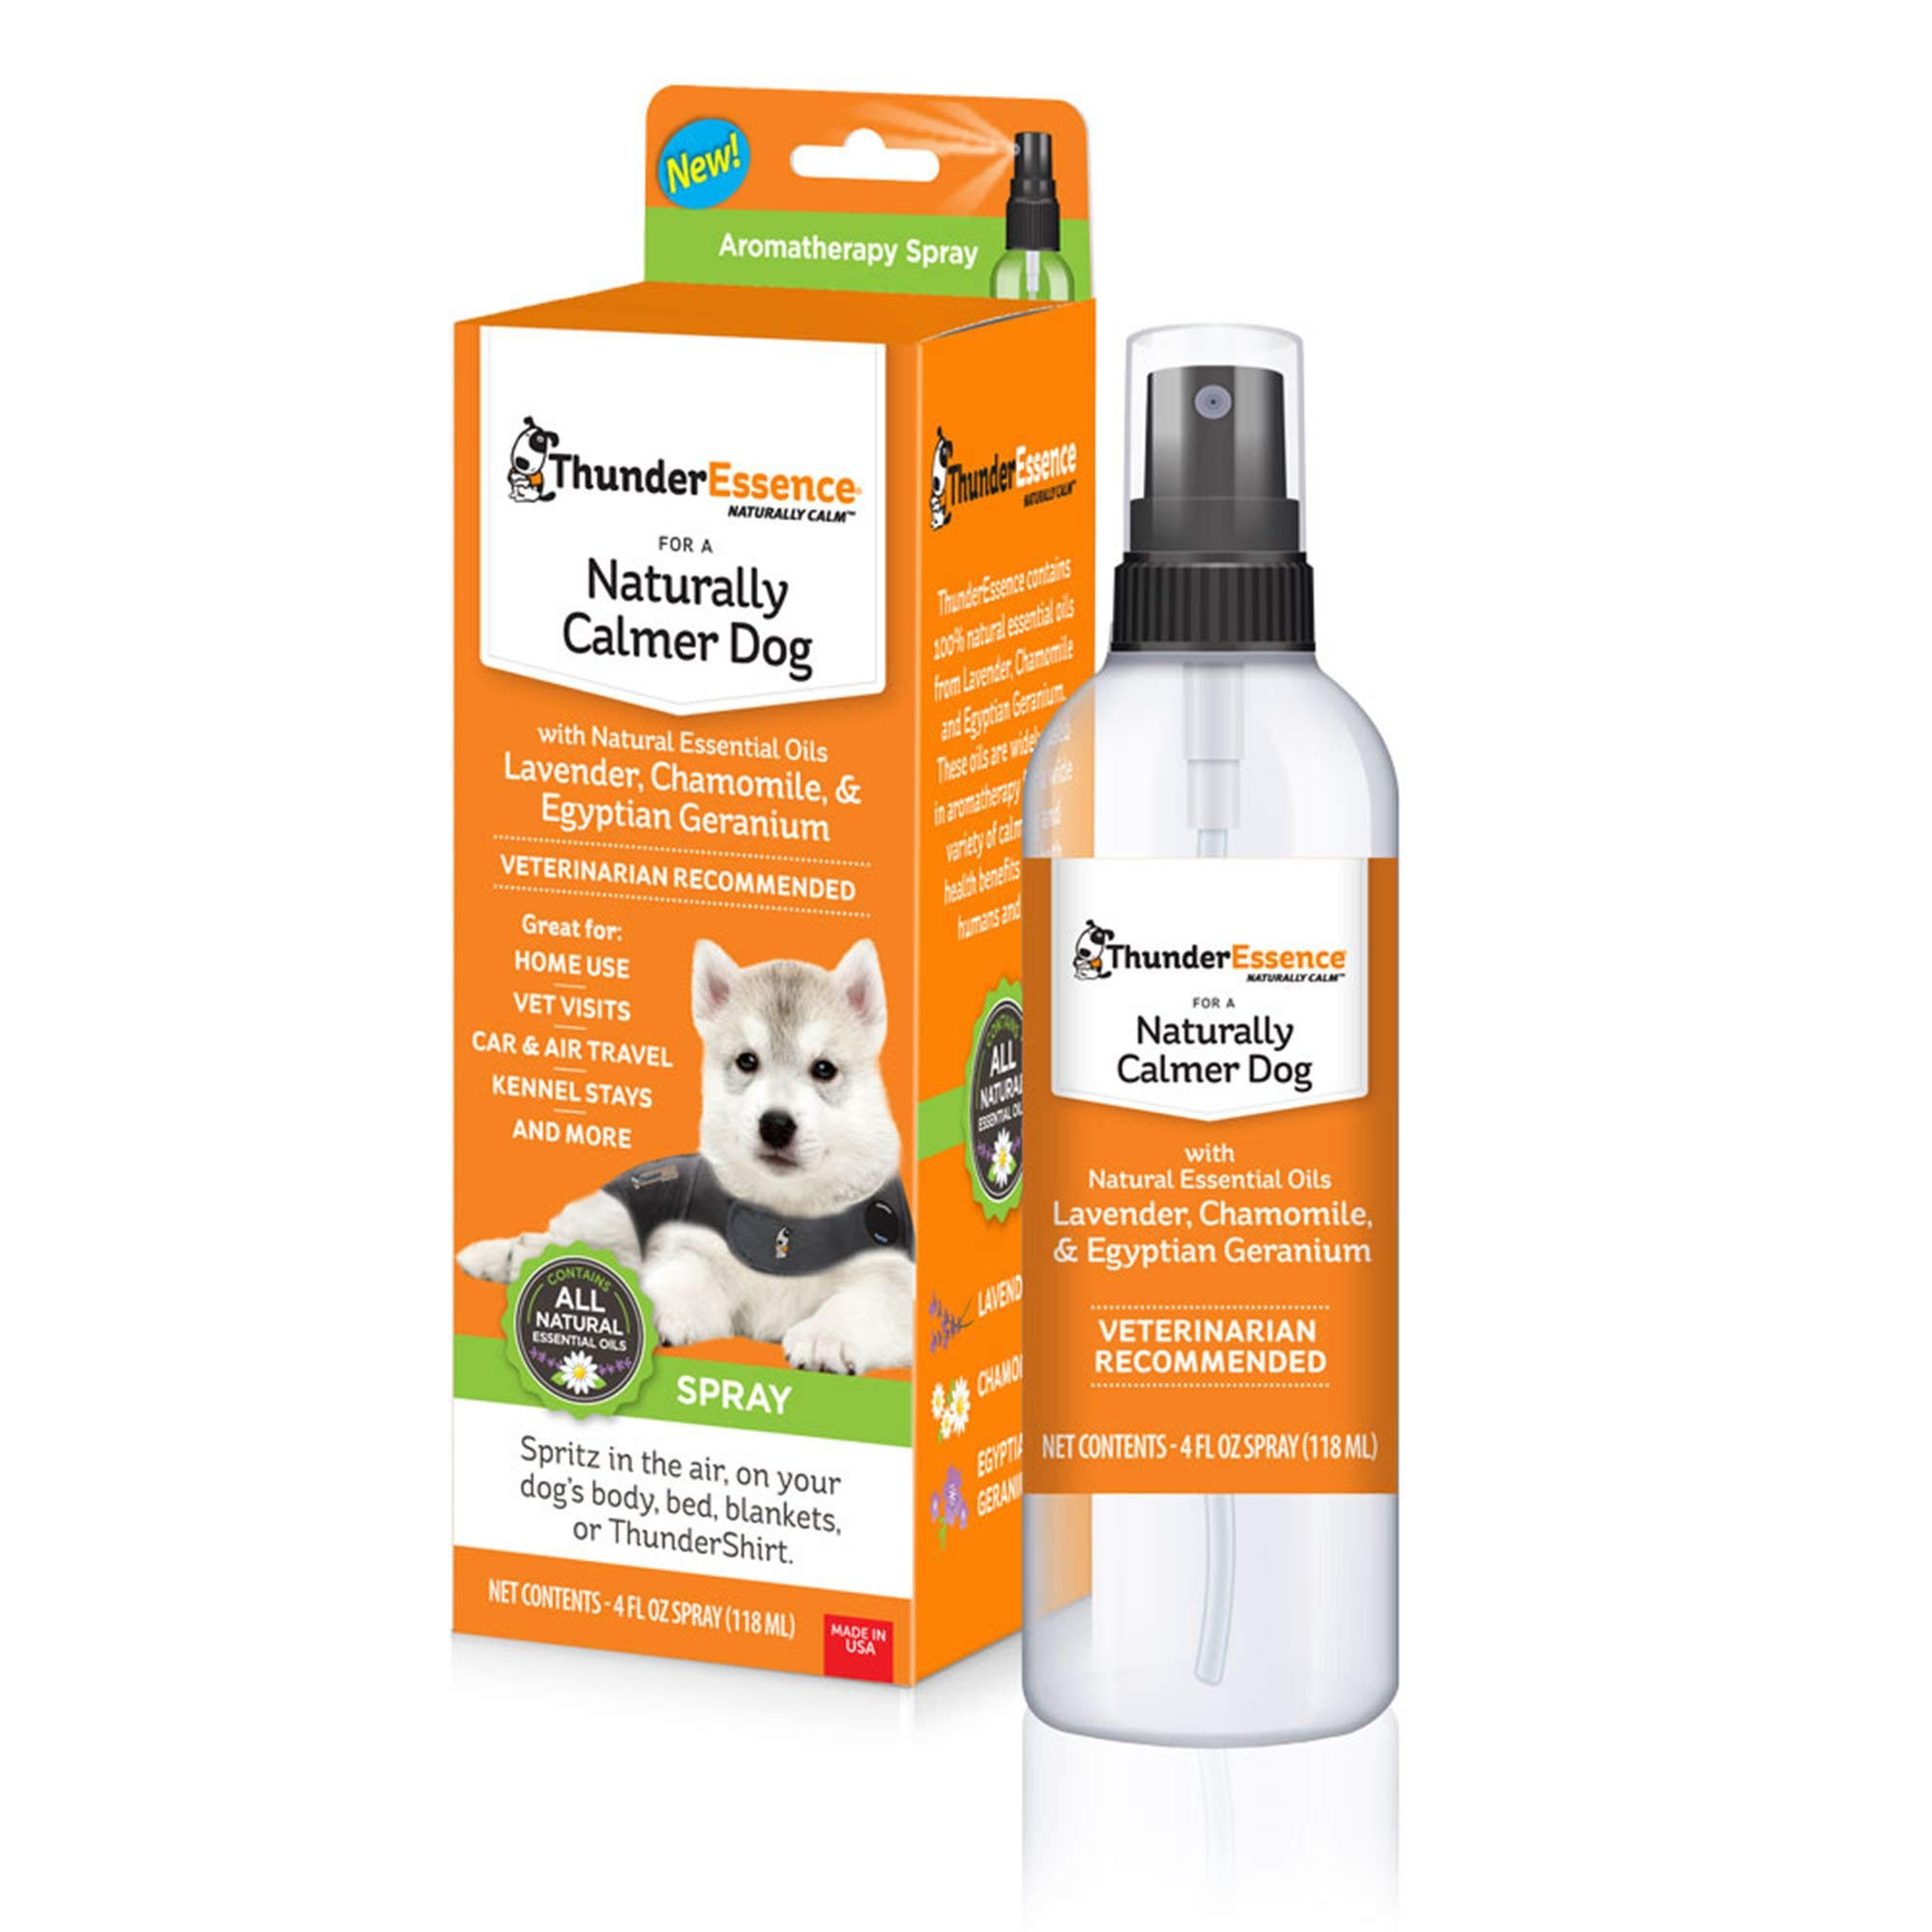 ThunderEssence Dog Calming Essential Oils   All-Natural Lavender, Chamomile and Egyptian Geranium   Vet Recommended  4 FL OZ. Spray by ThunderEssence